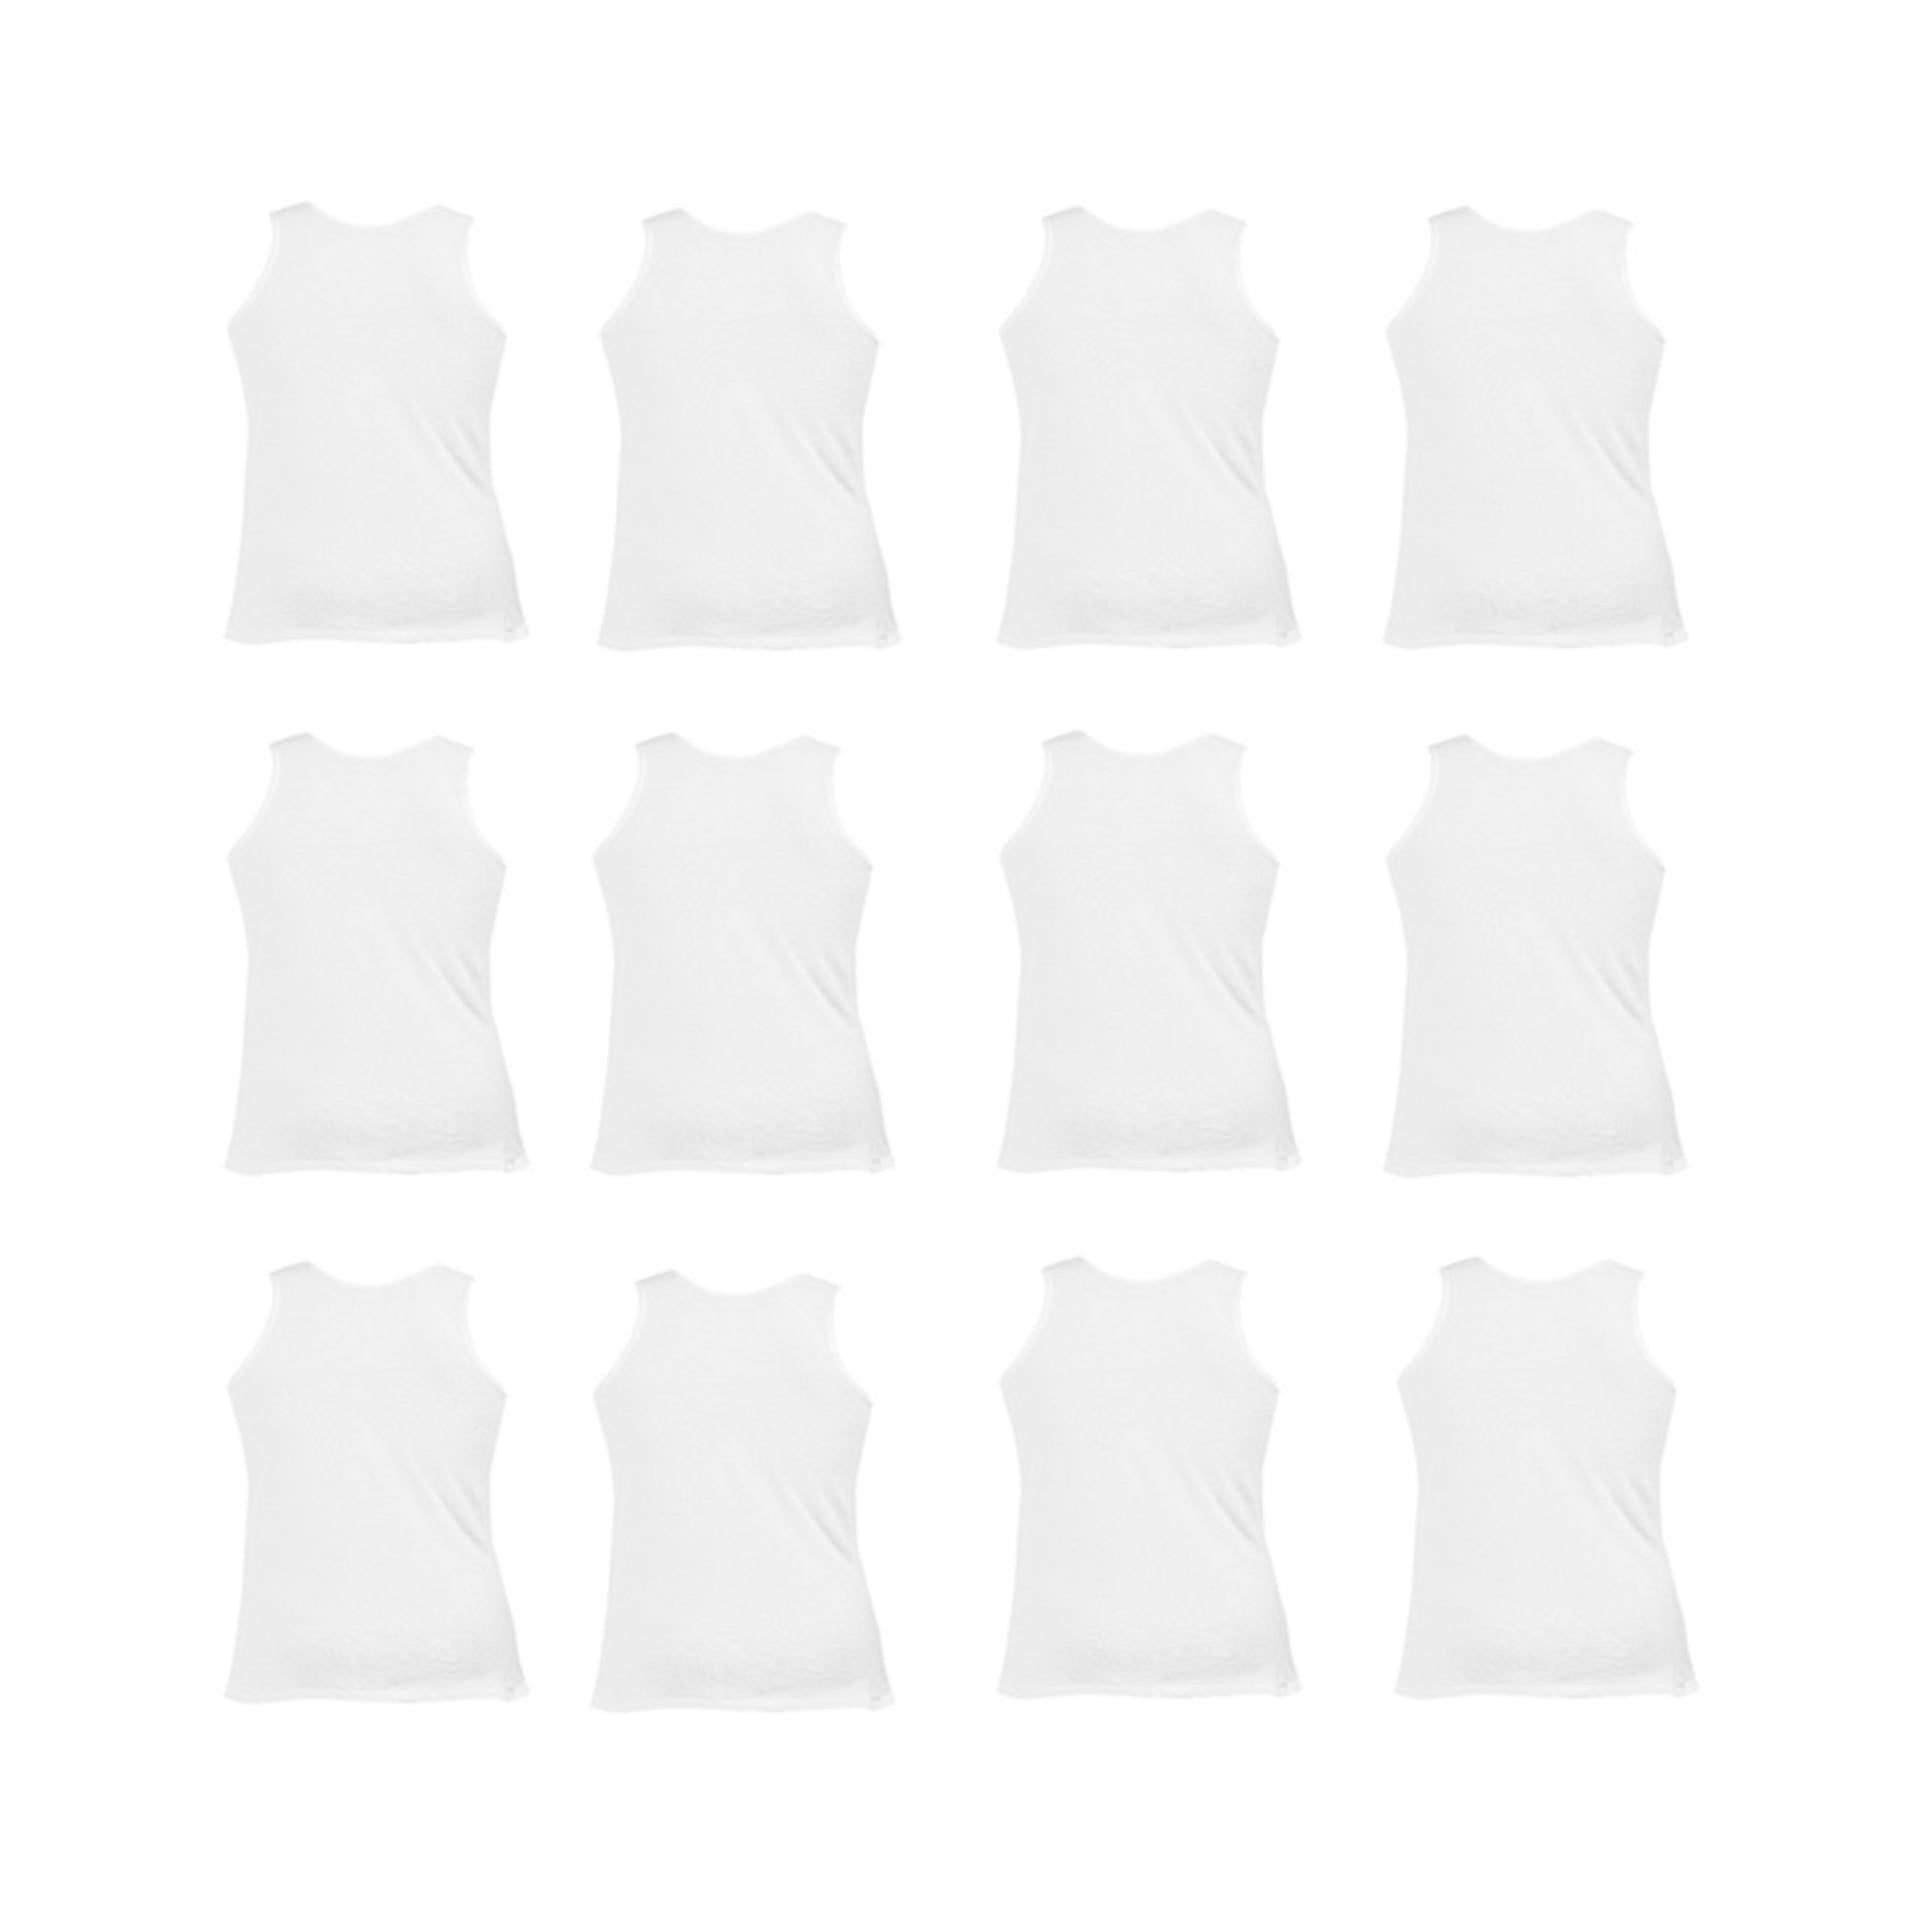 Daisy Summer Pack of 12 Cotton Polyester Vest for Men (80% Cotton 20% Polyester) - White UG-492-36